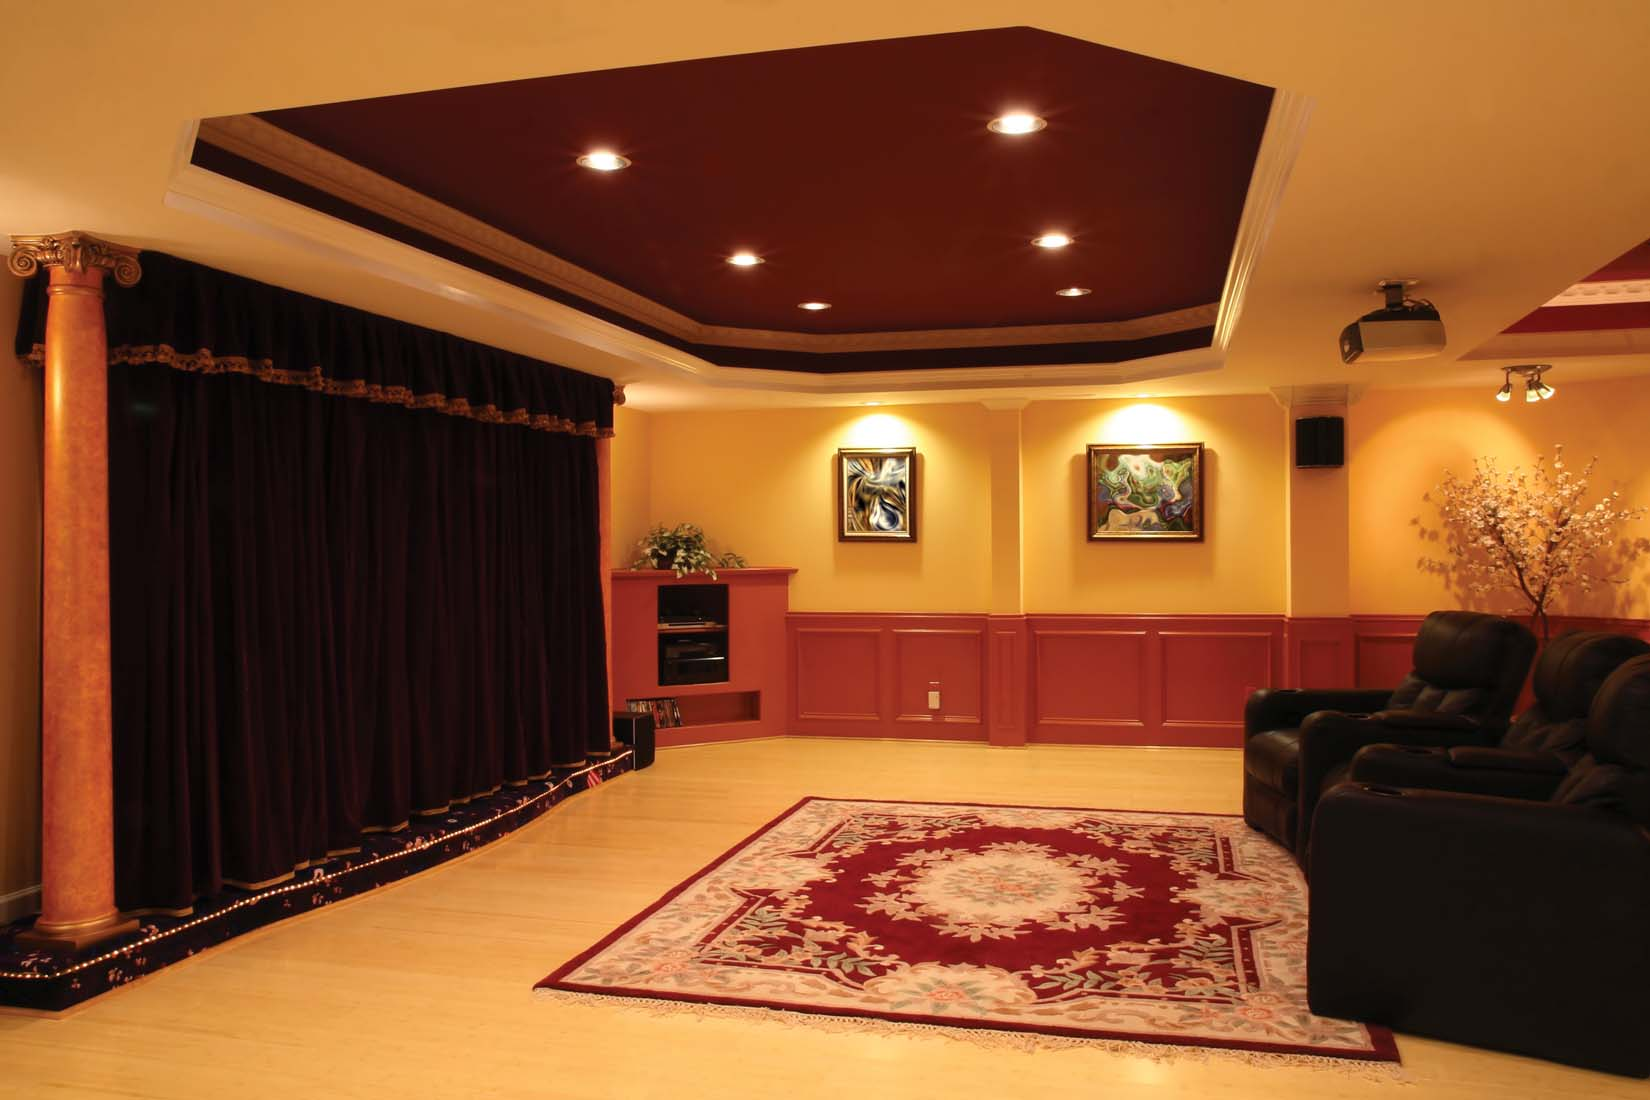 lighting home theater - Home Theater Lighting Design